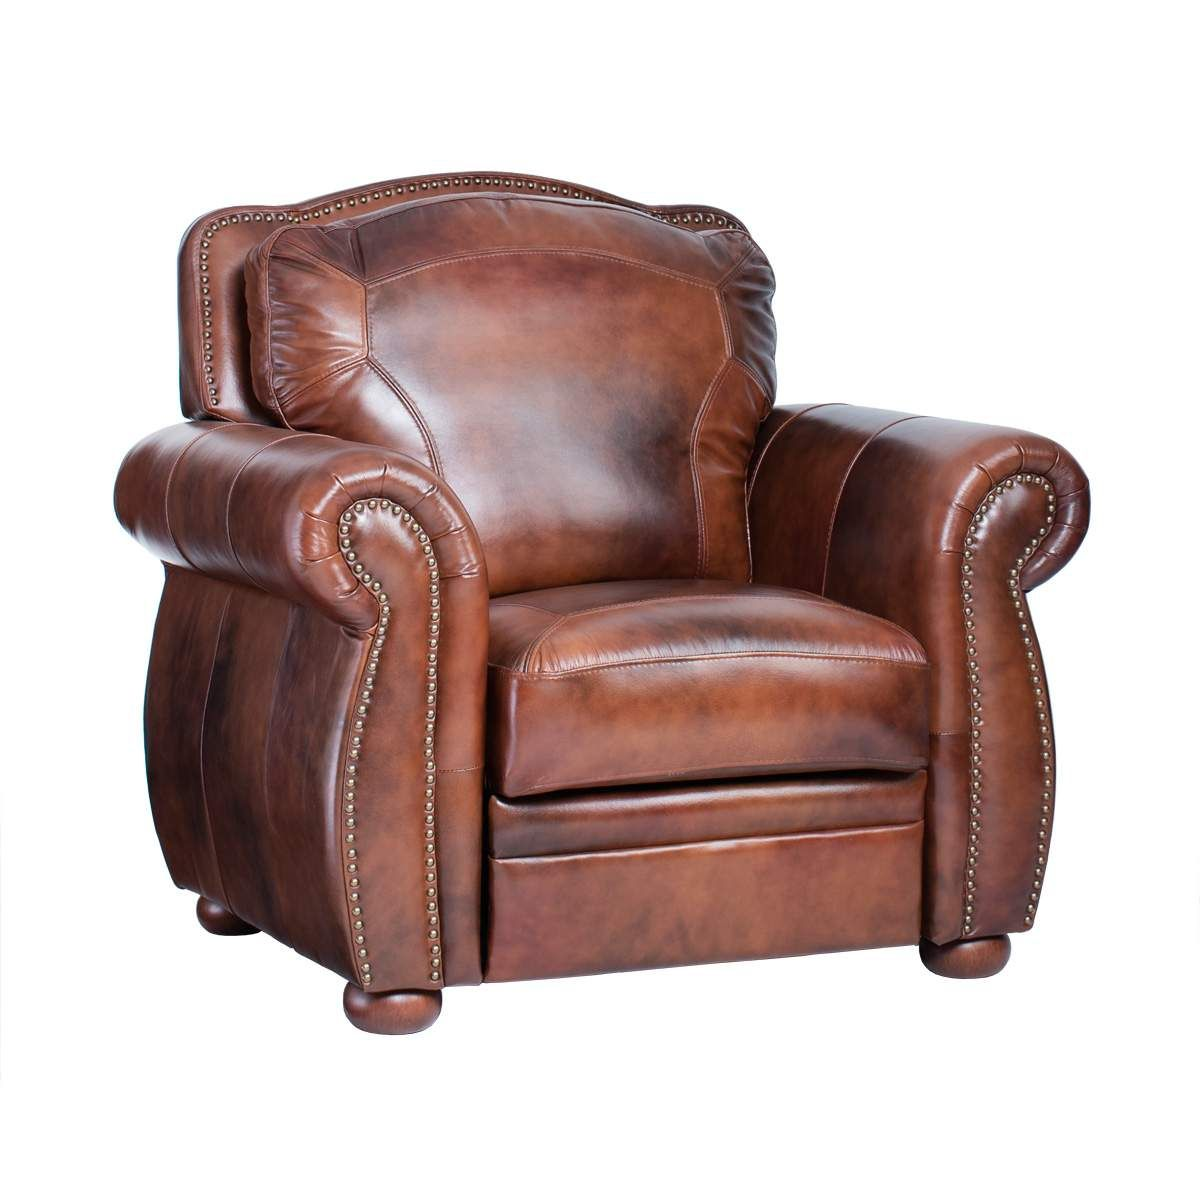 Top Grain Leather Recliner Chair Rolled Arm Accent Chair